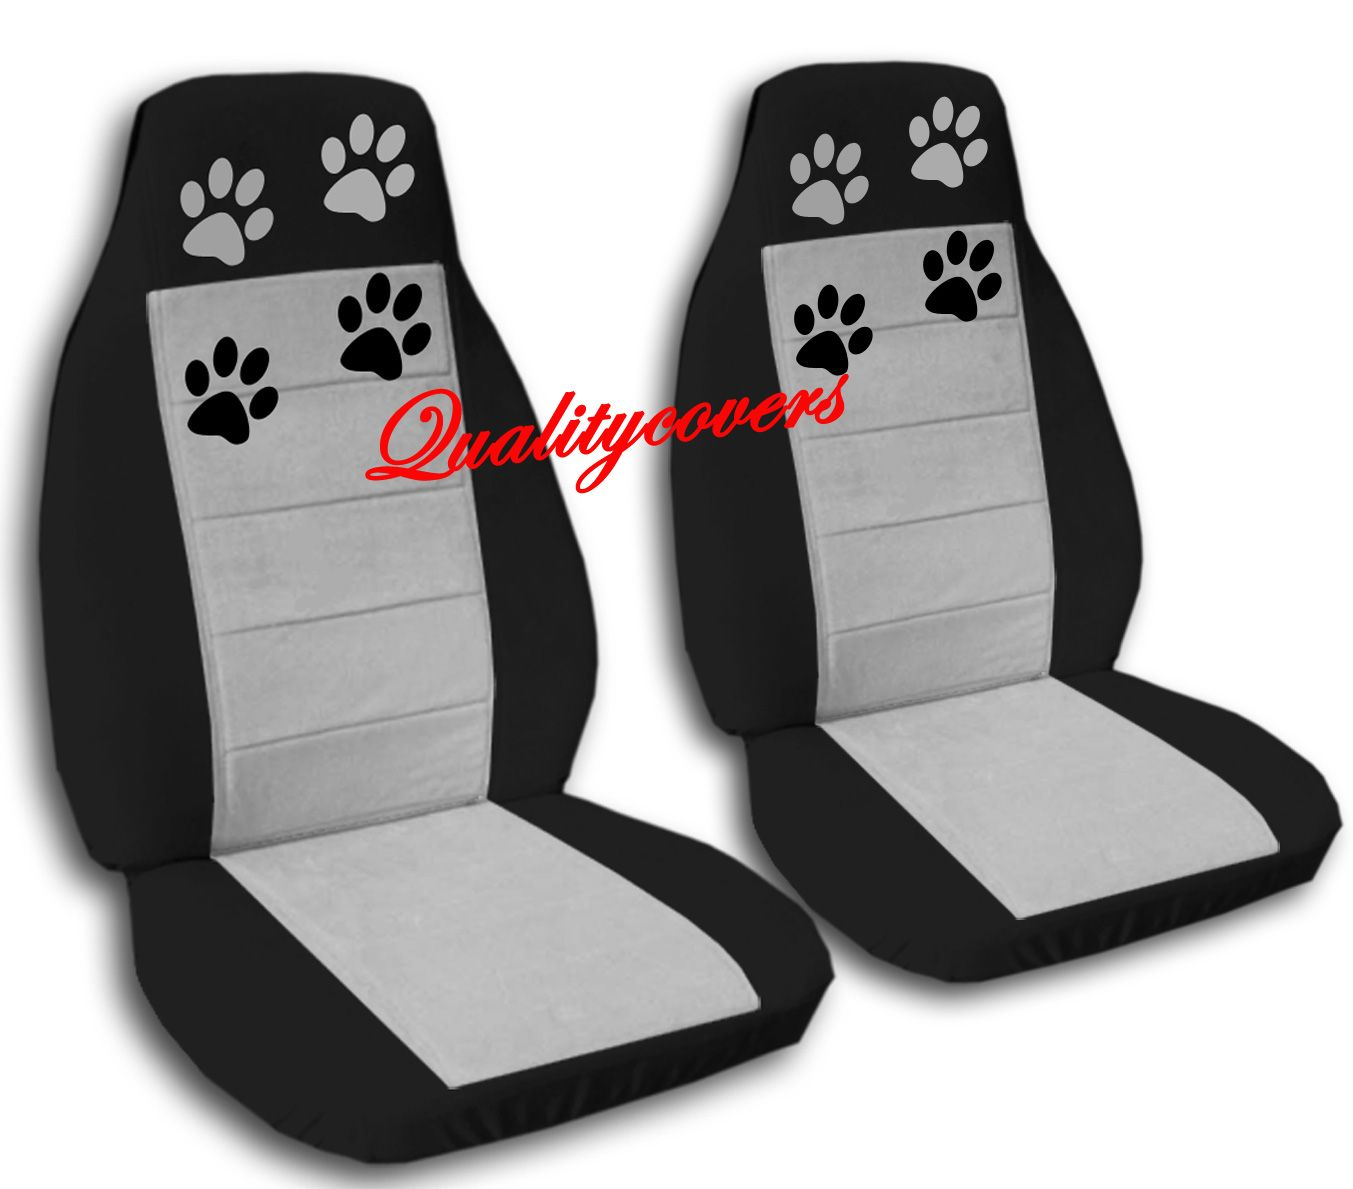 Paw Prints Car Seat Covers Edgy Auto Designs Pawprint